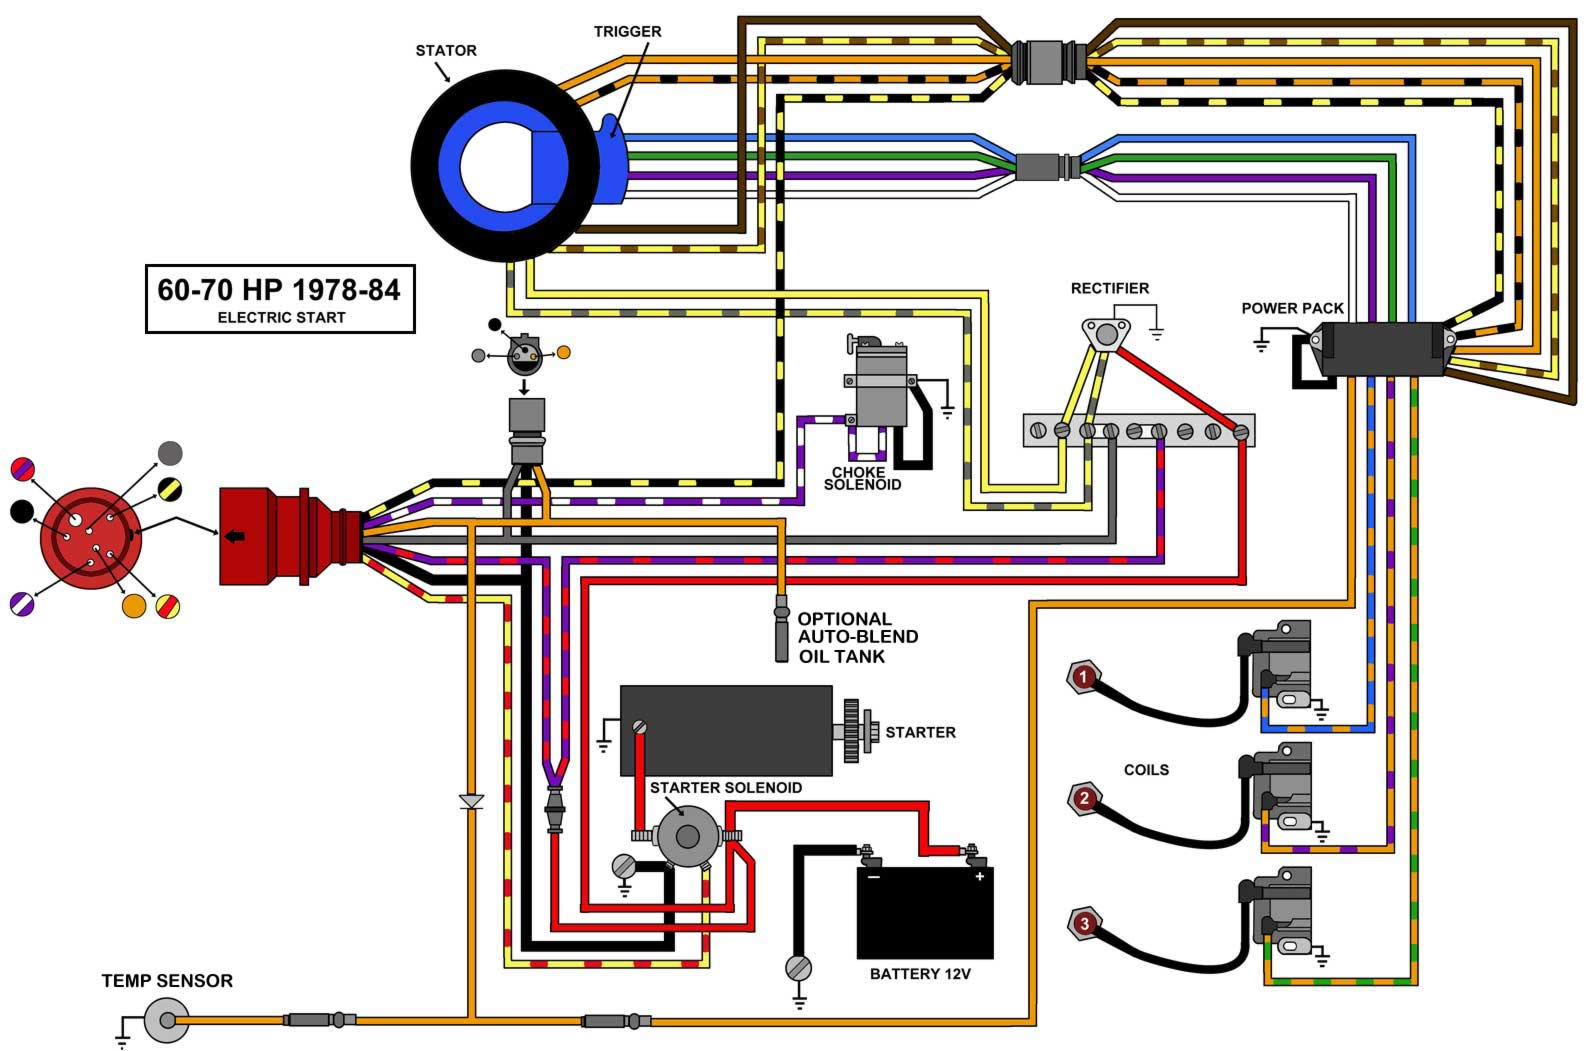 78 84_3 CYL_EL wiring tach from johnson controls page 1 iboats boating forums Mercruiser Tilt Trim Wiring Diagram at suagrazia.org